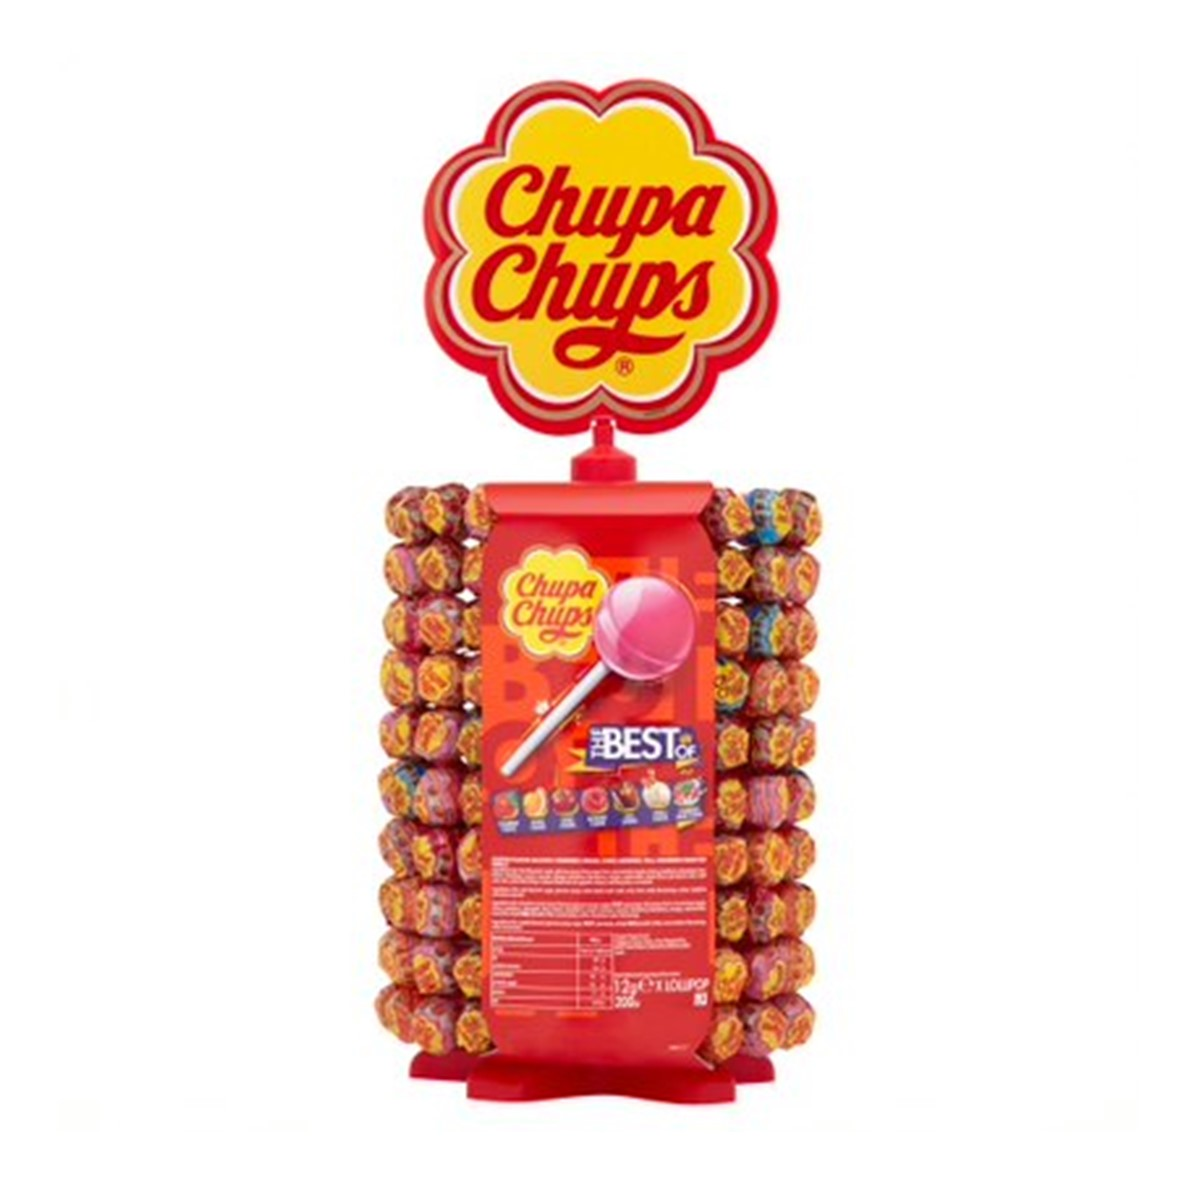 Chupa Chups Best Of Lollipops - wheel of lollies [200 wrapped]